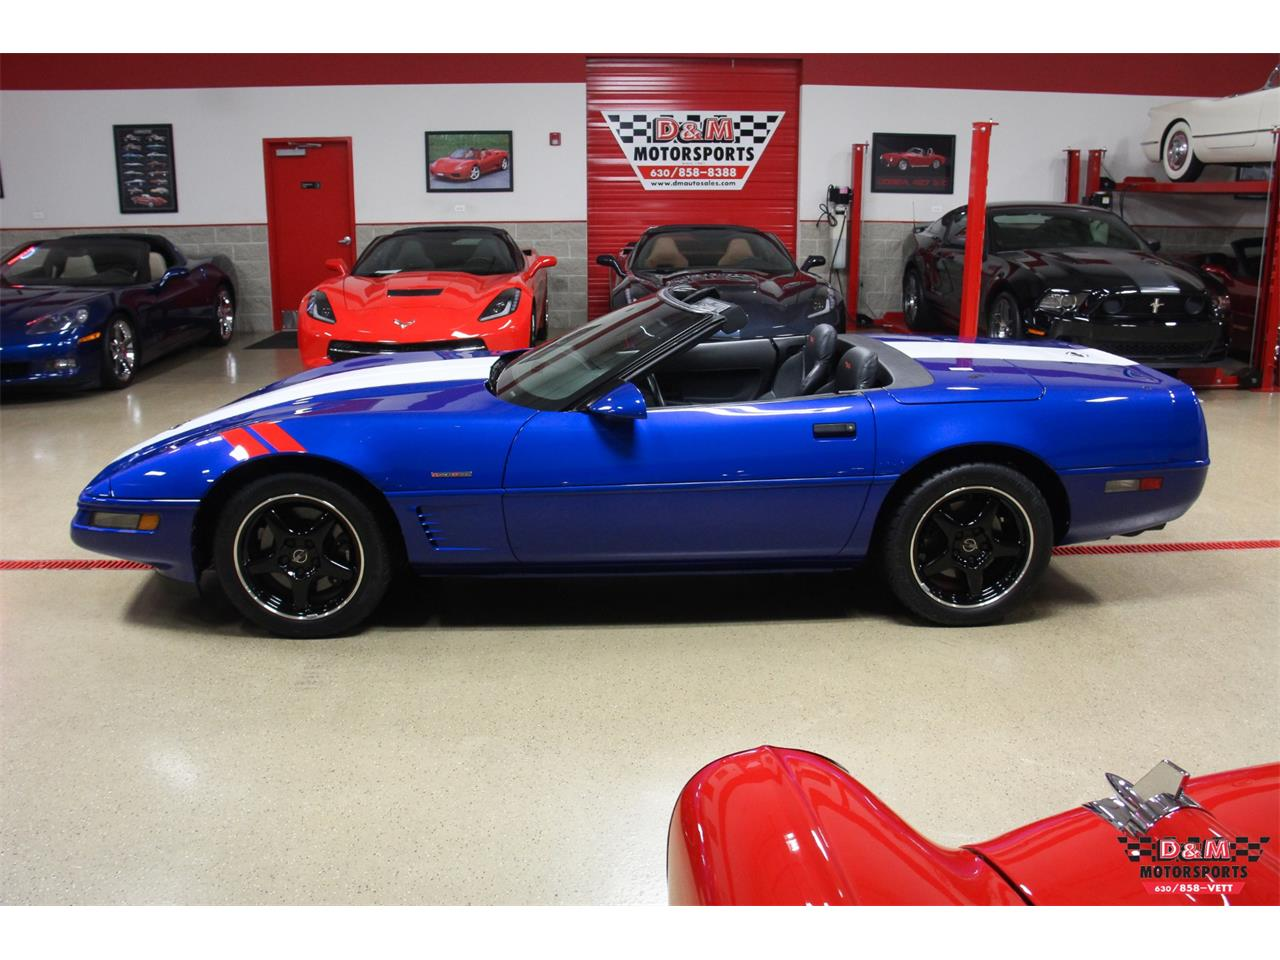 Large Picture of 1996 Chevrolet Corvette located in Glen Ellyn Illinois - $44,995.00 Offered by D & M Motorsports - LV9Z